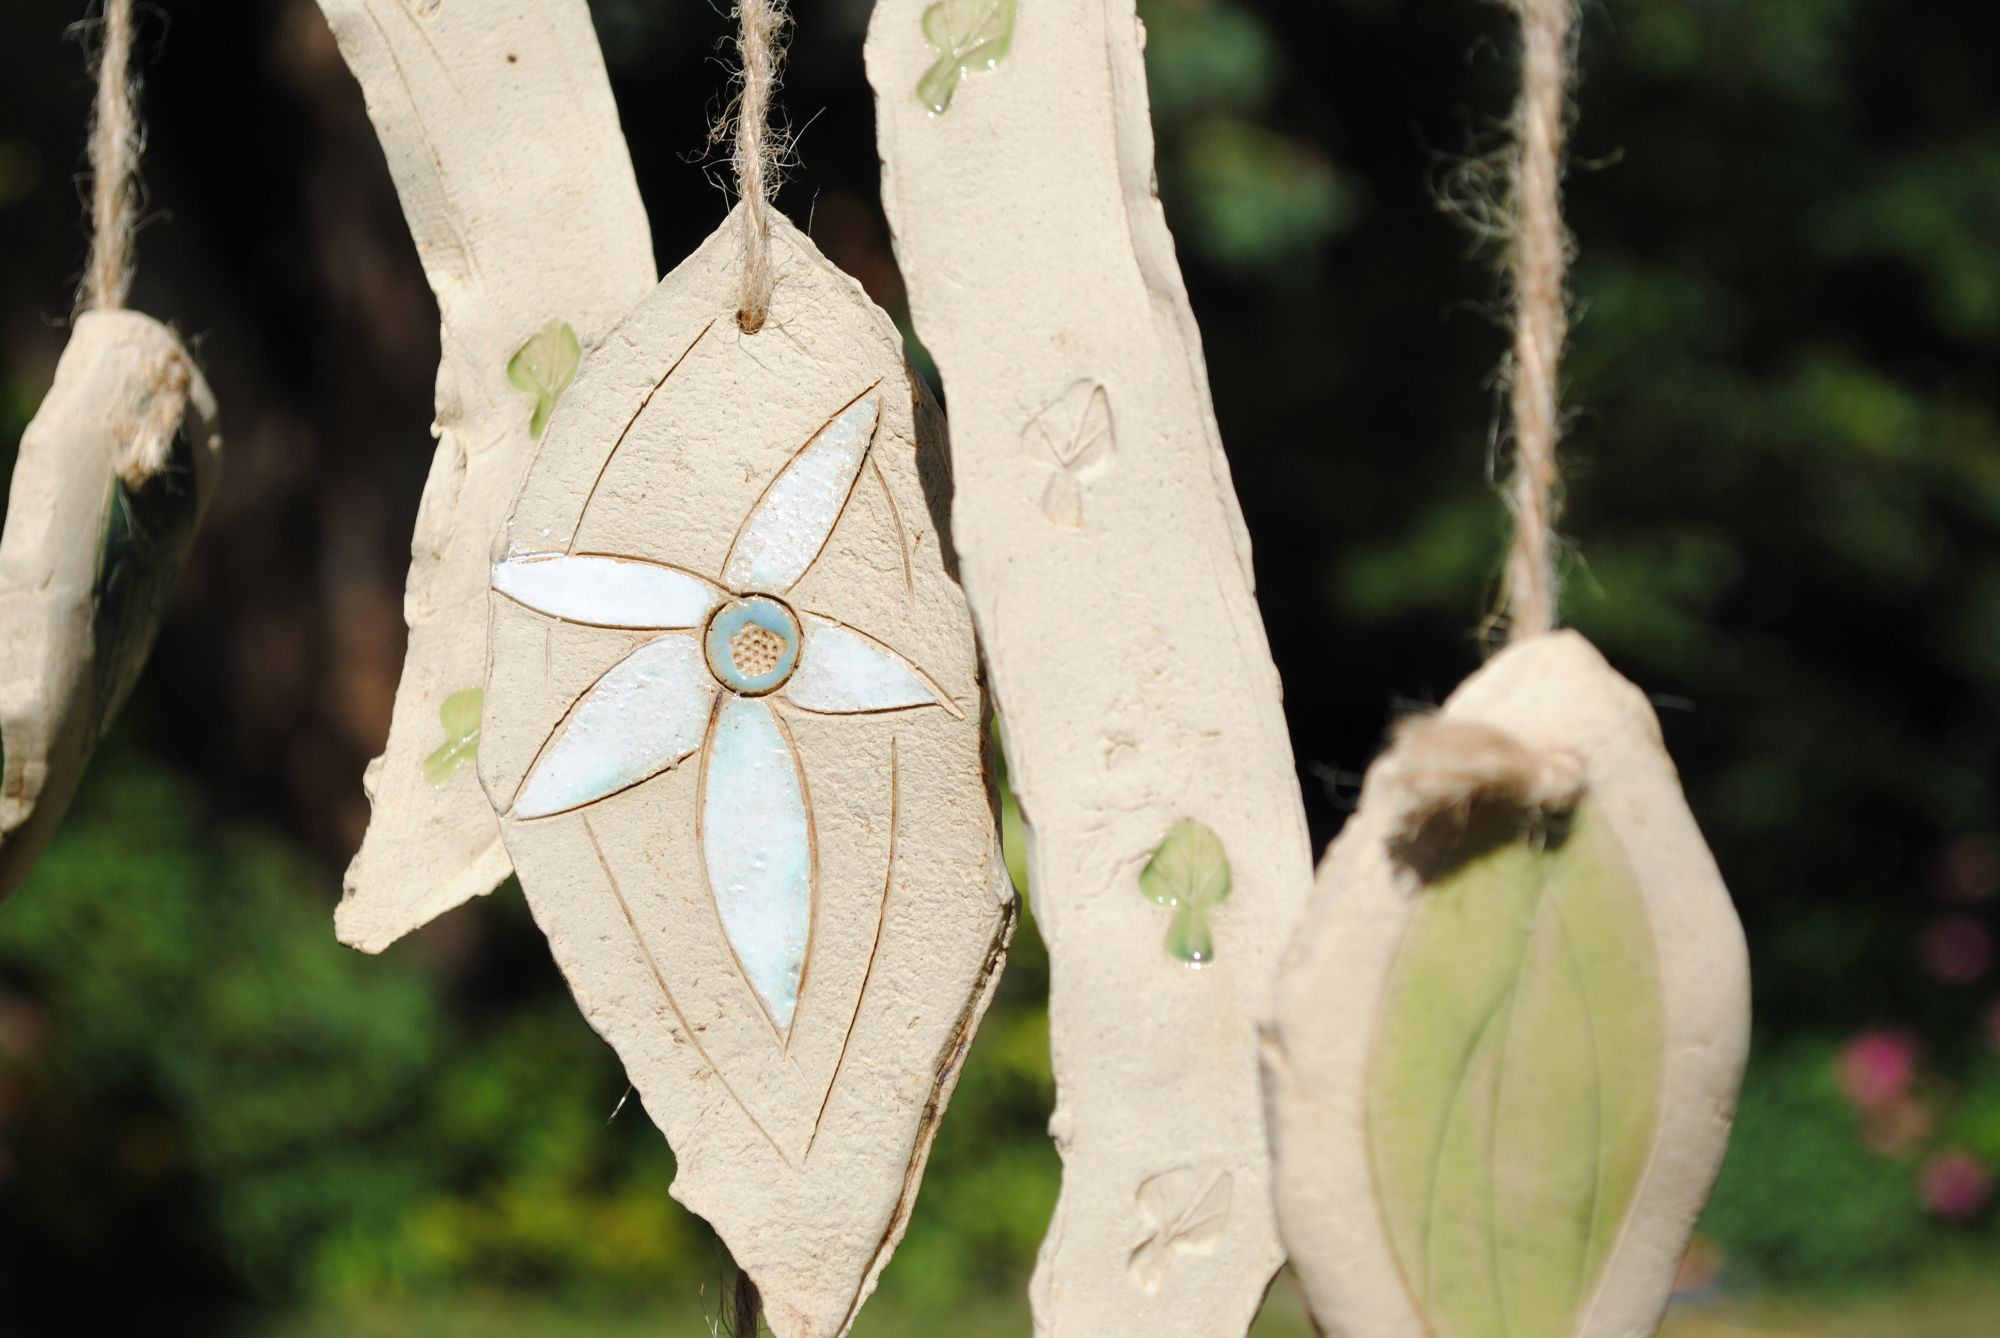 Wind Chime with leaves and flowers.